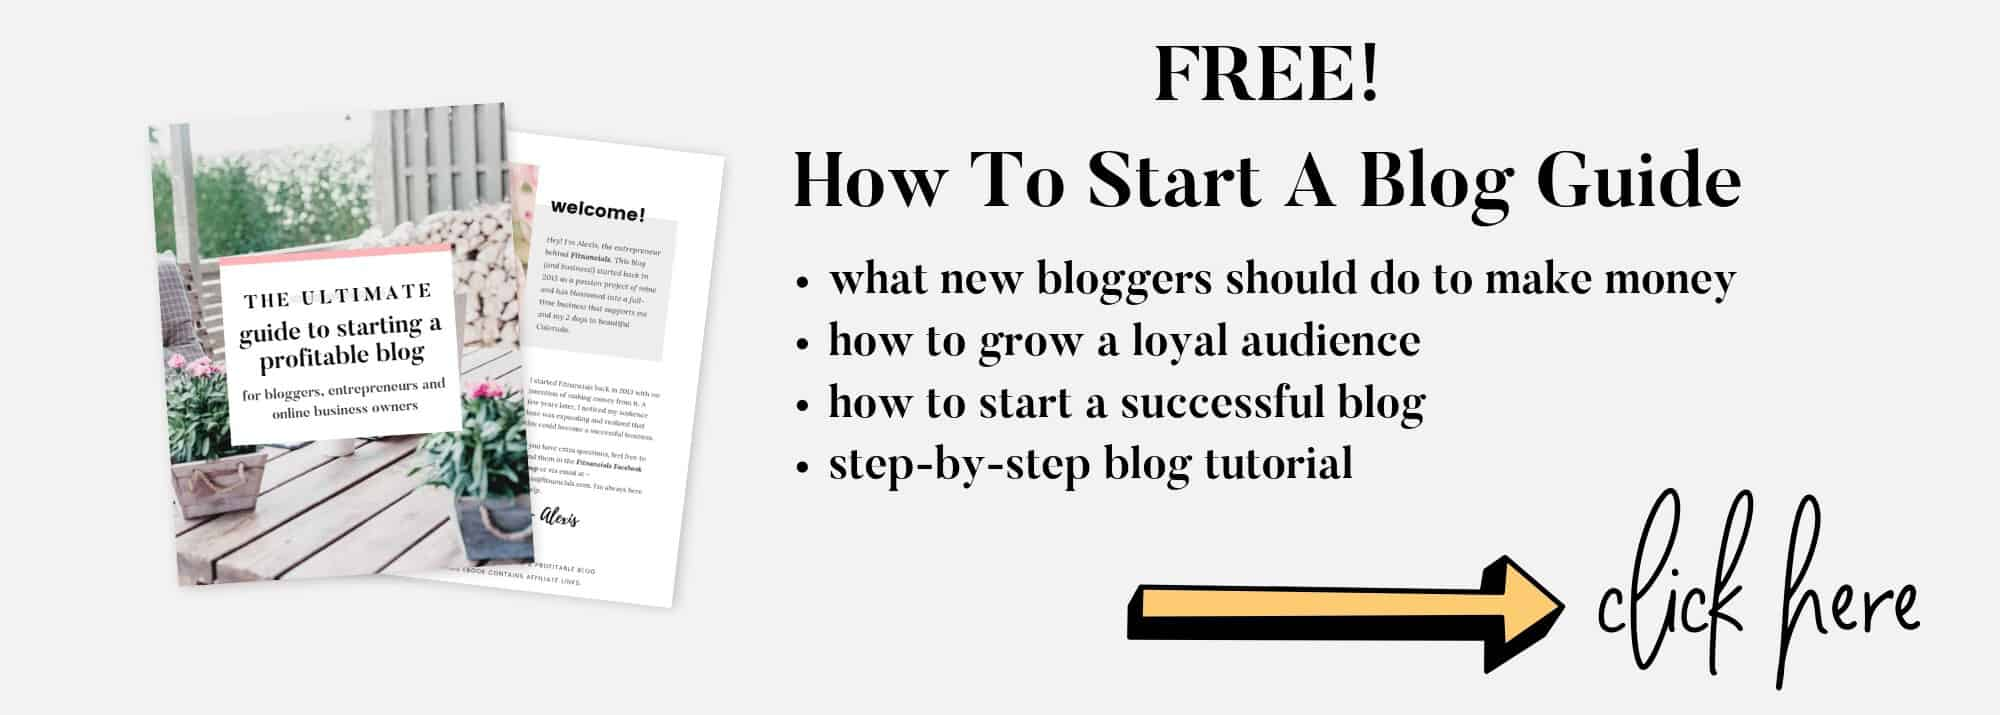 ways to start an article